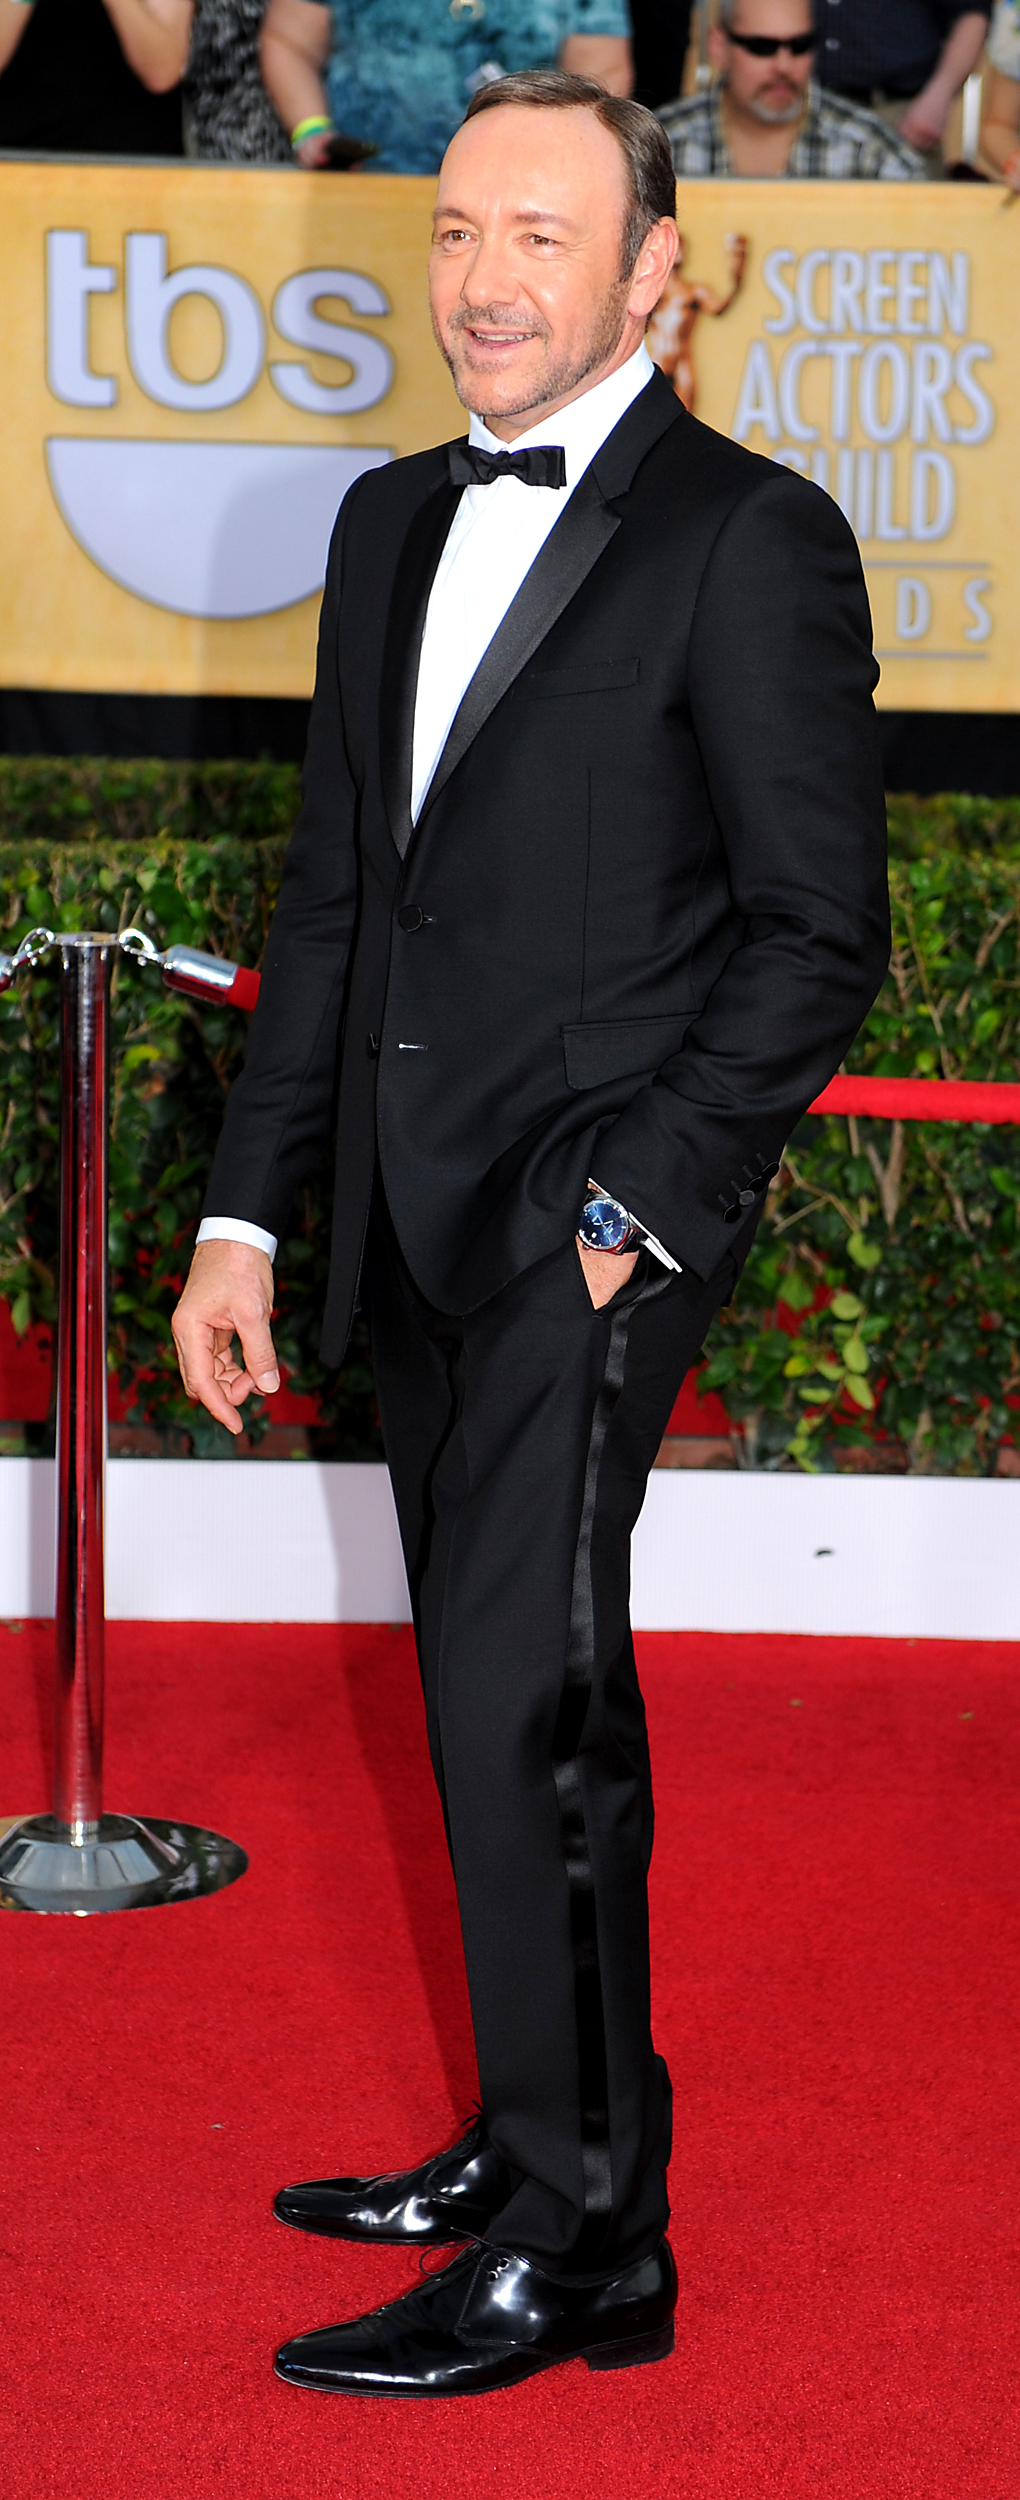 . Kevin Spacey arrives at the 20th Annual Screen Actors Guild Awards  at the Shrine Auditorium in Los Angeles, California on Saturday January 18, 2014 (Photo by Michael Owen Baker / Los Angeles Daily News)